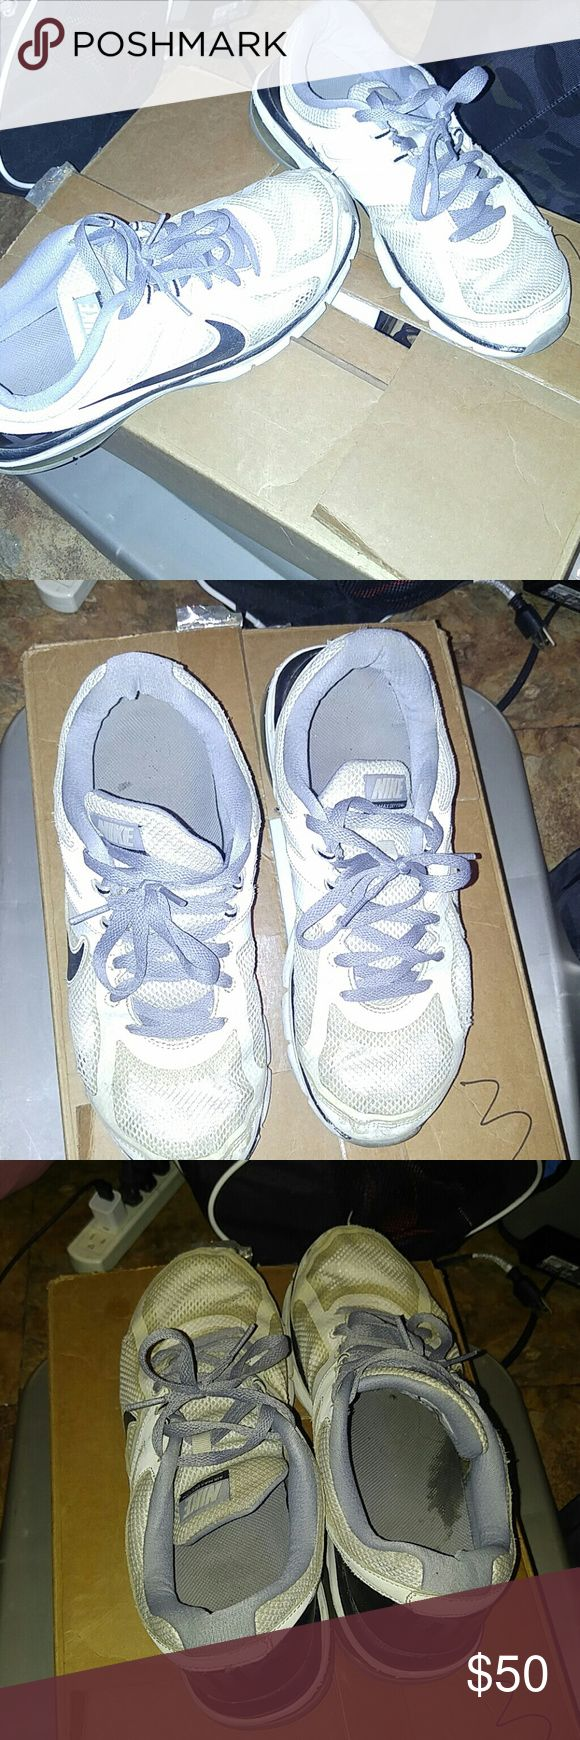 White Nike Trainers 7/10 CONDITION NO HOLES  LACES IN GOOD CONDITION Nike Shoes Sneakers